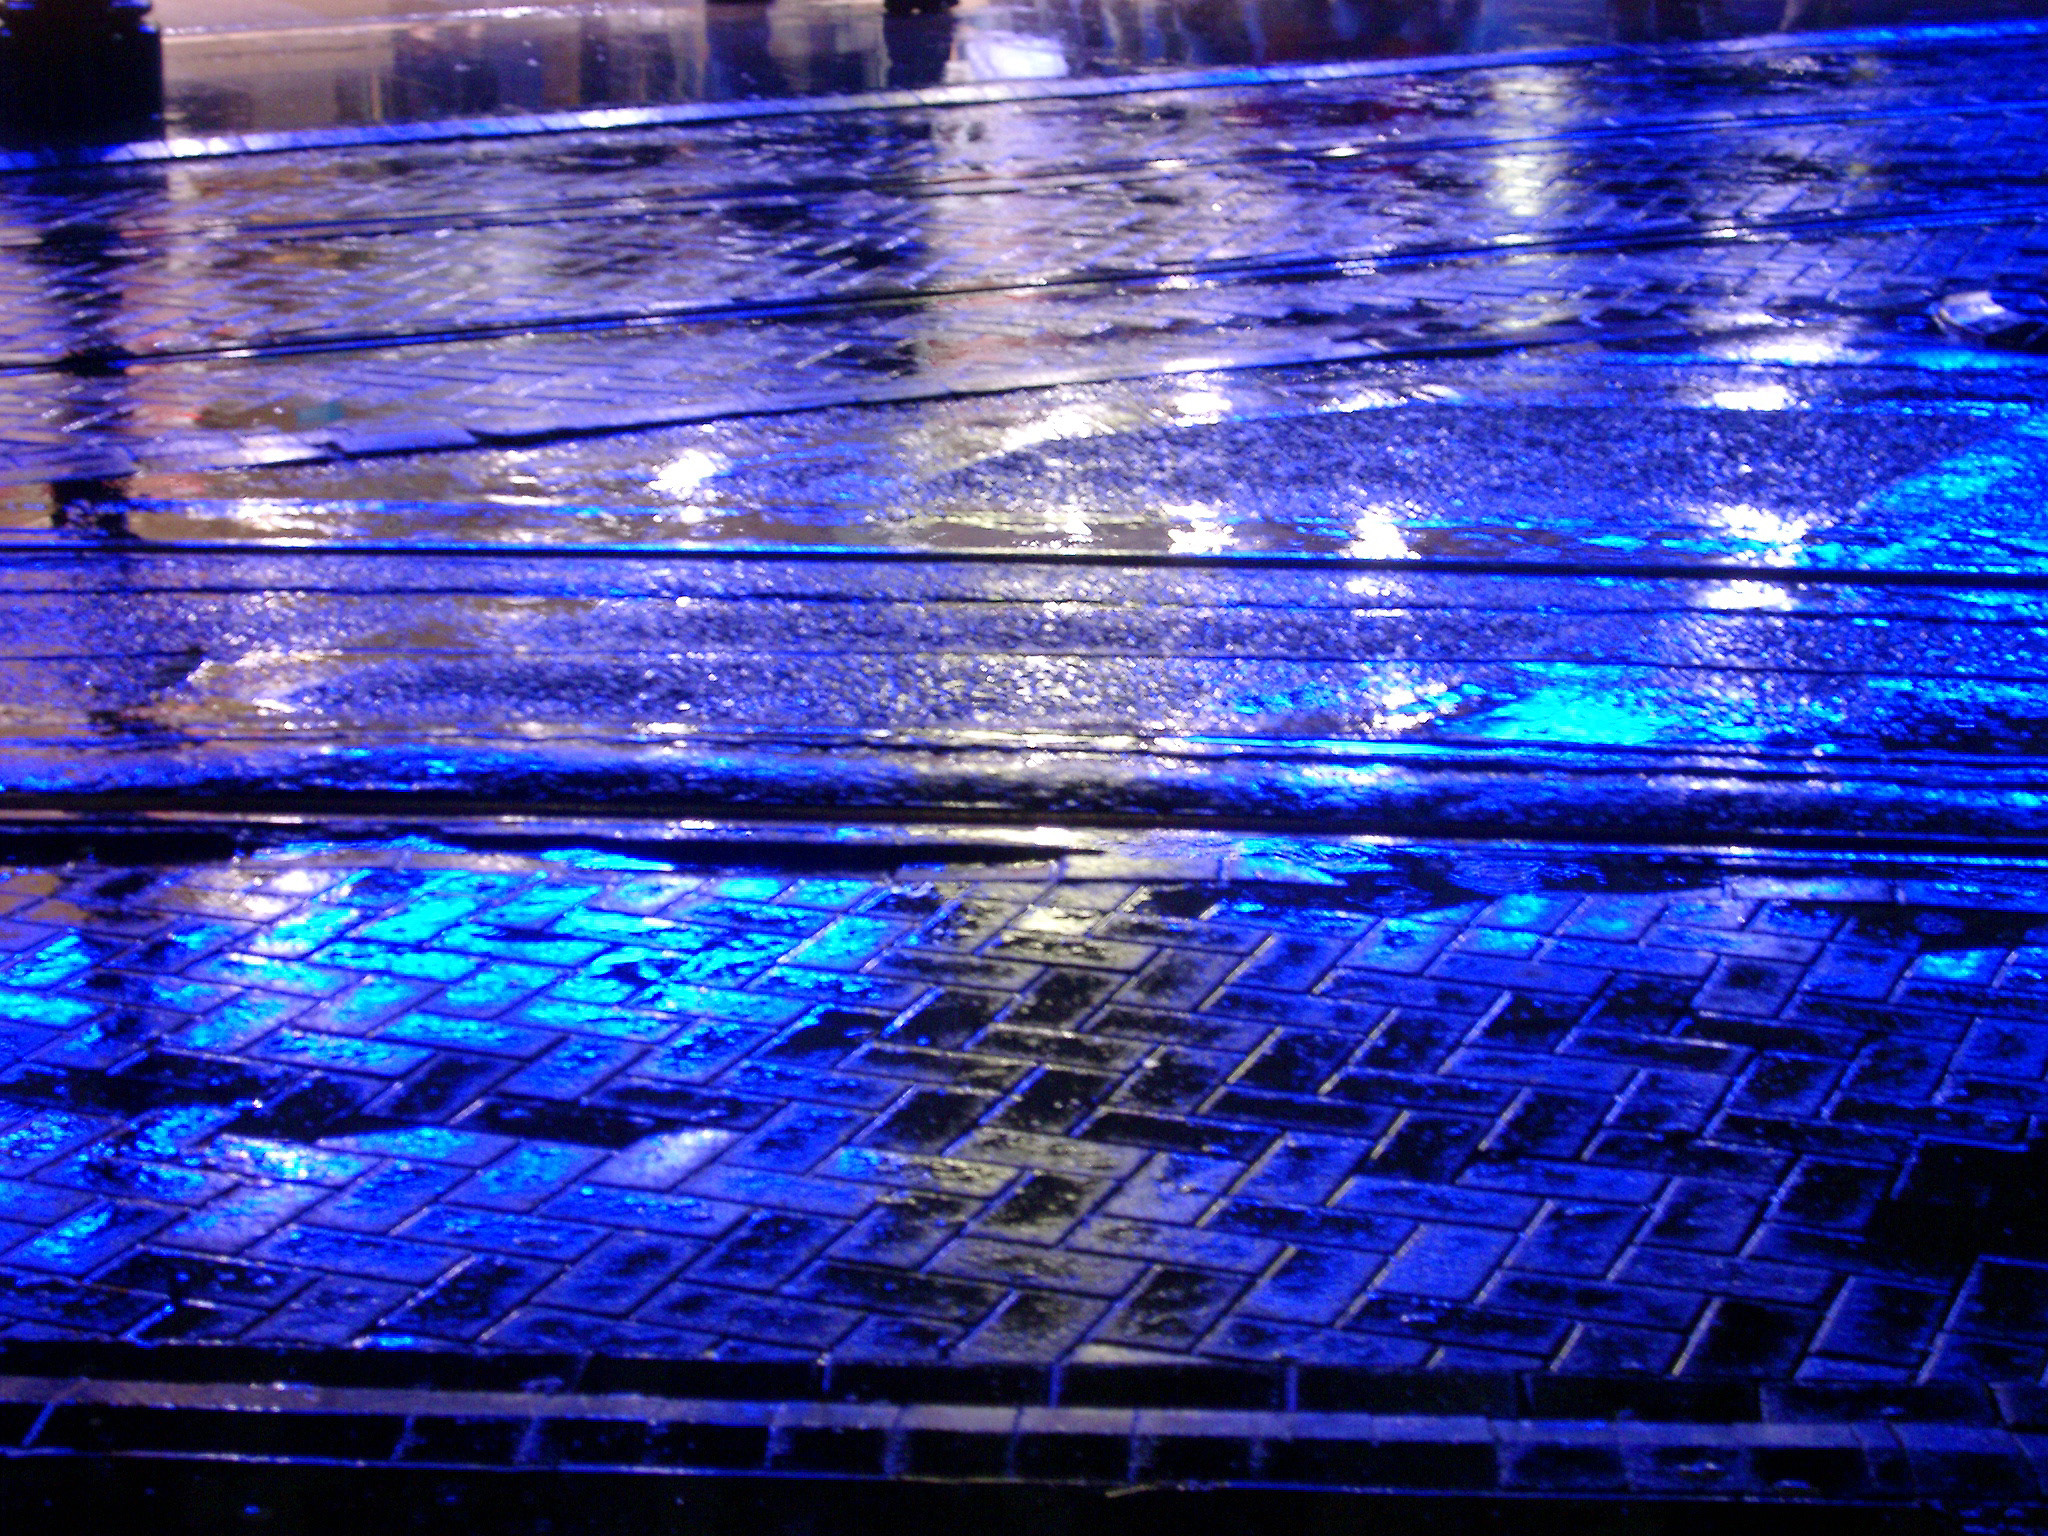 Rain falling on an urban sidewalk at night with blue reflections from lights in the layer of moisture for a colorful background